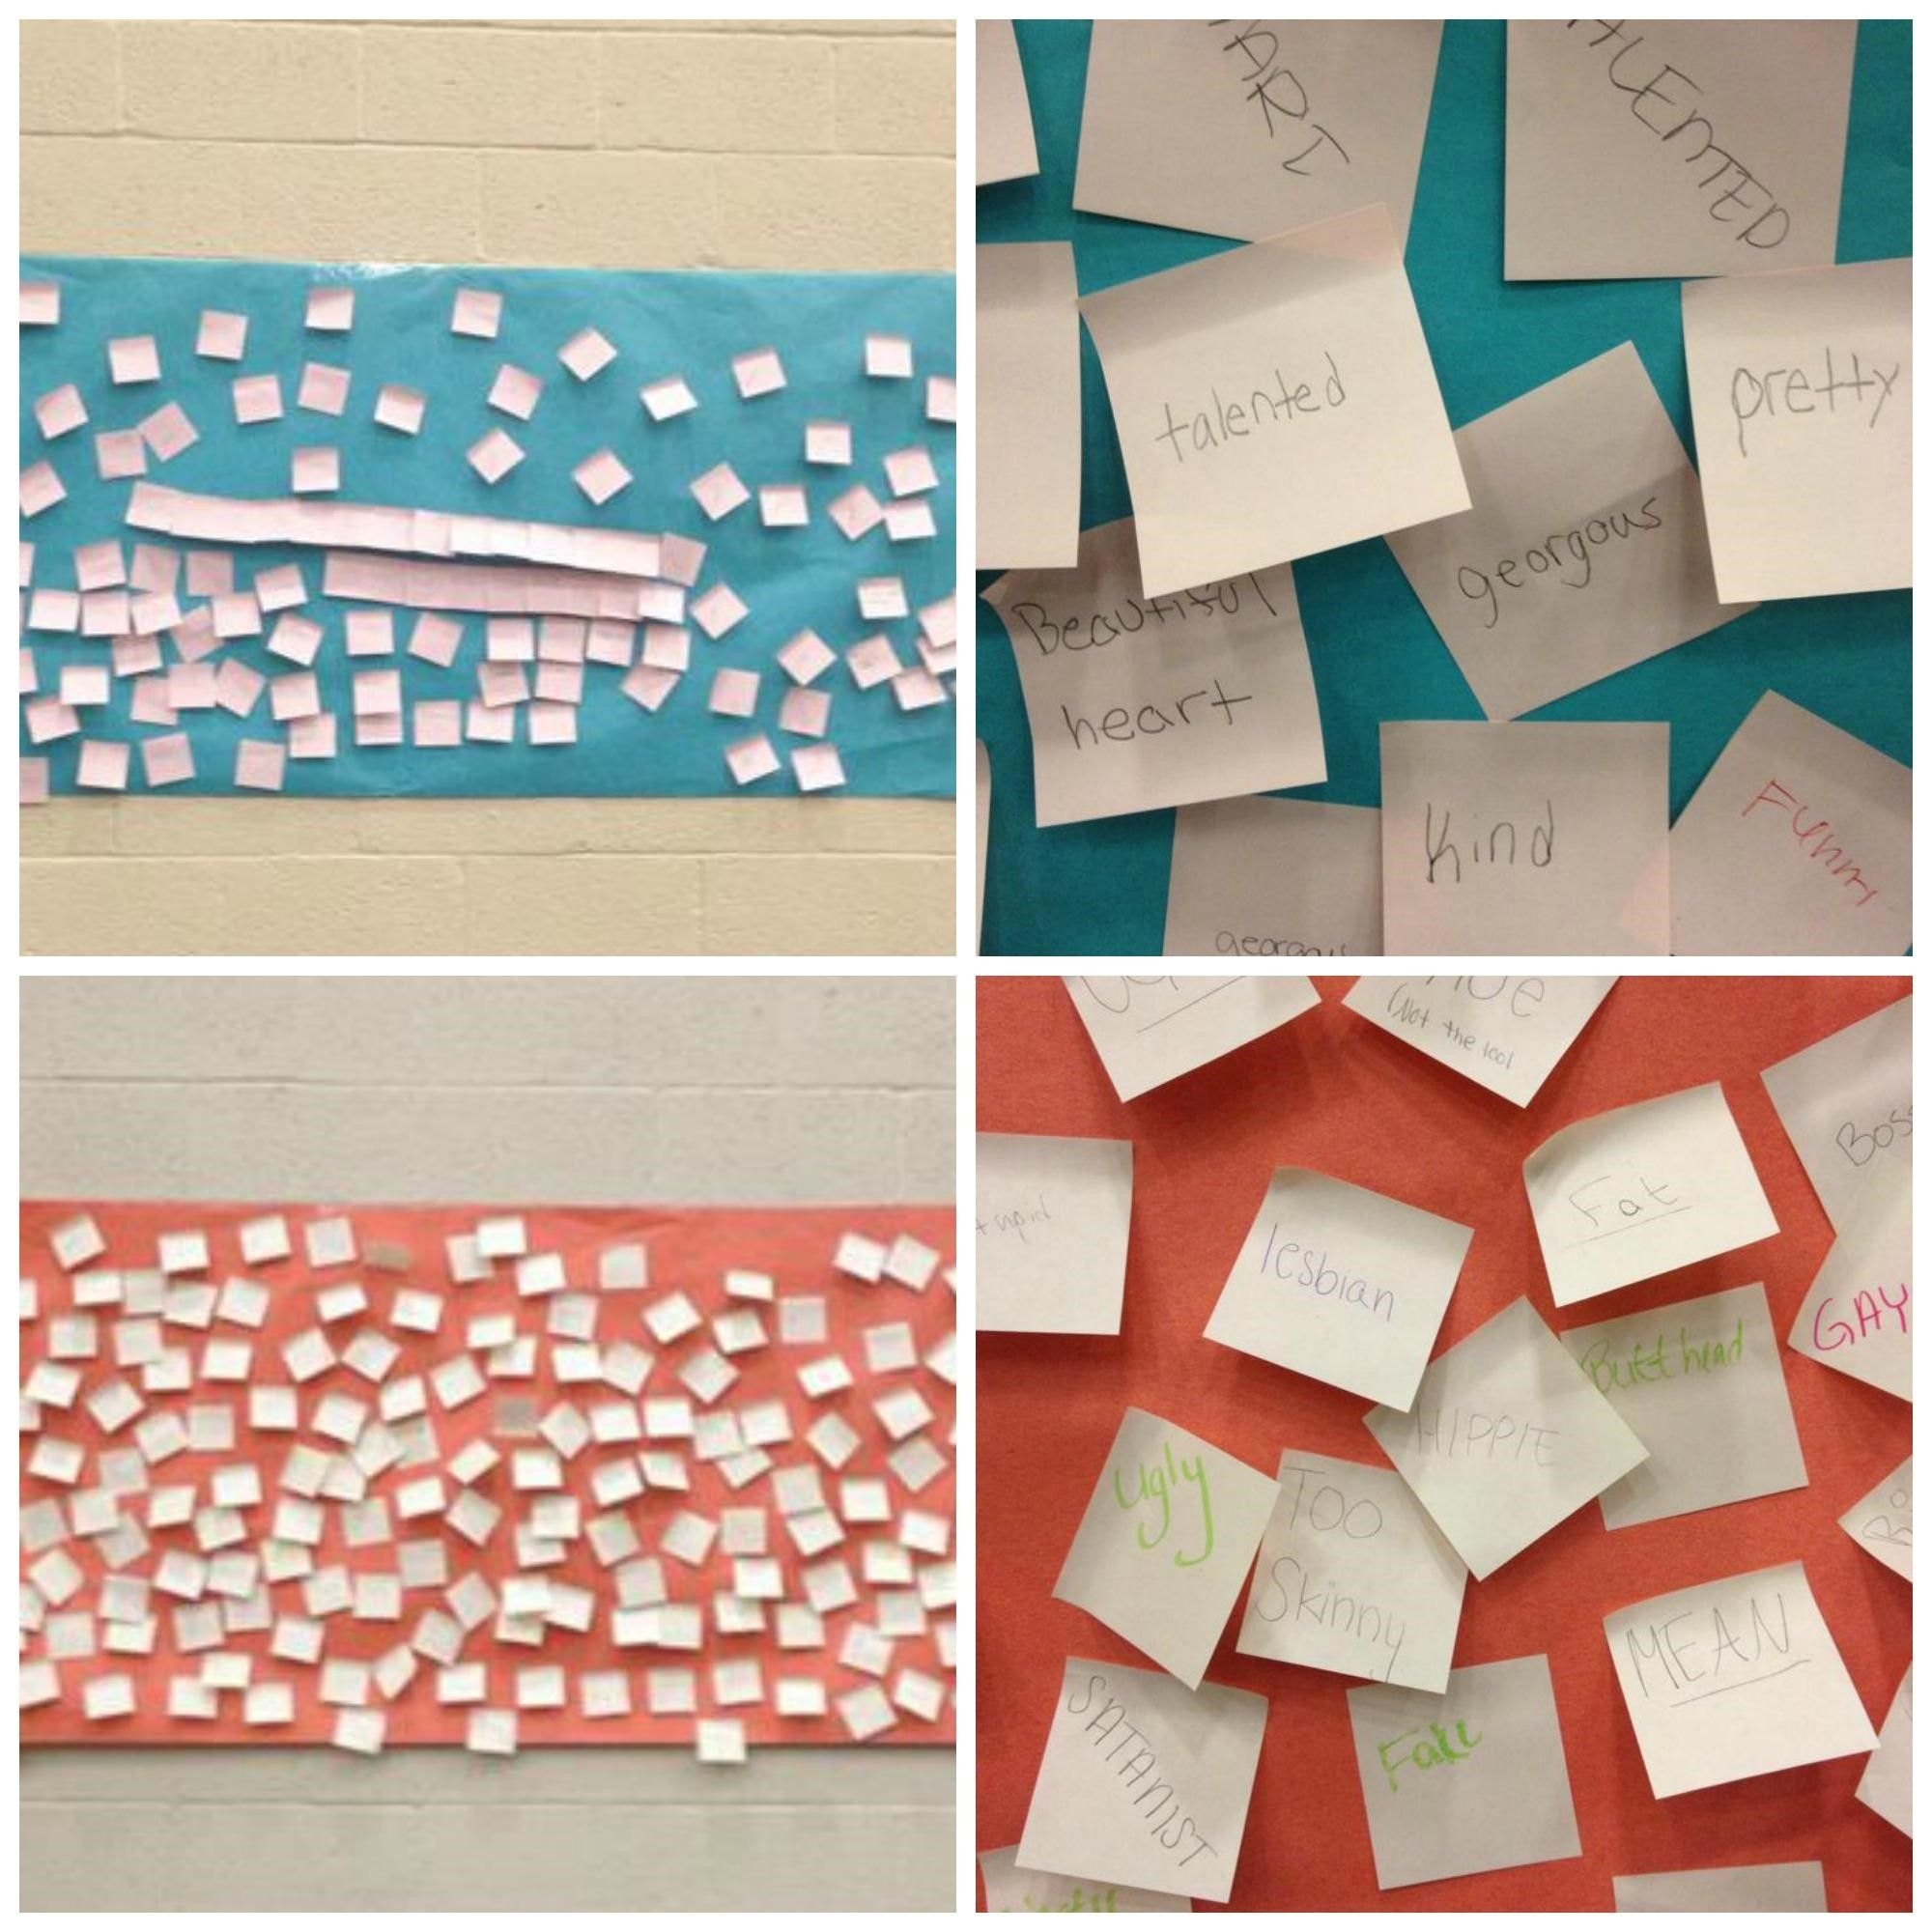 Reflection Exercise Positive Negative Post Its